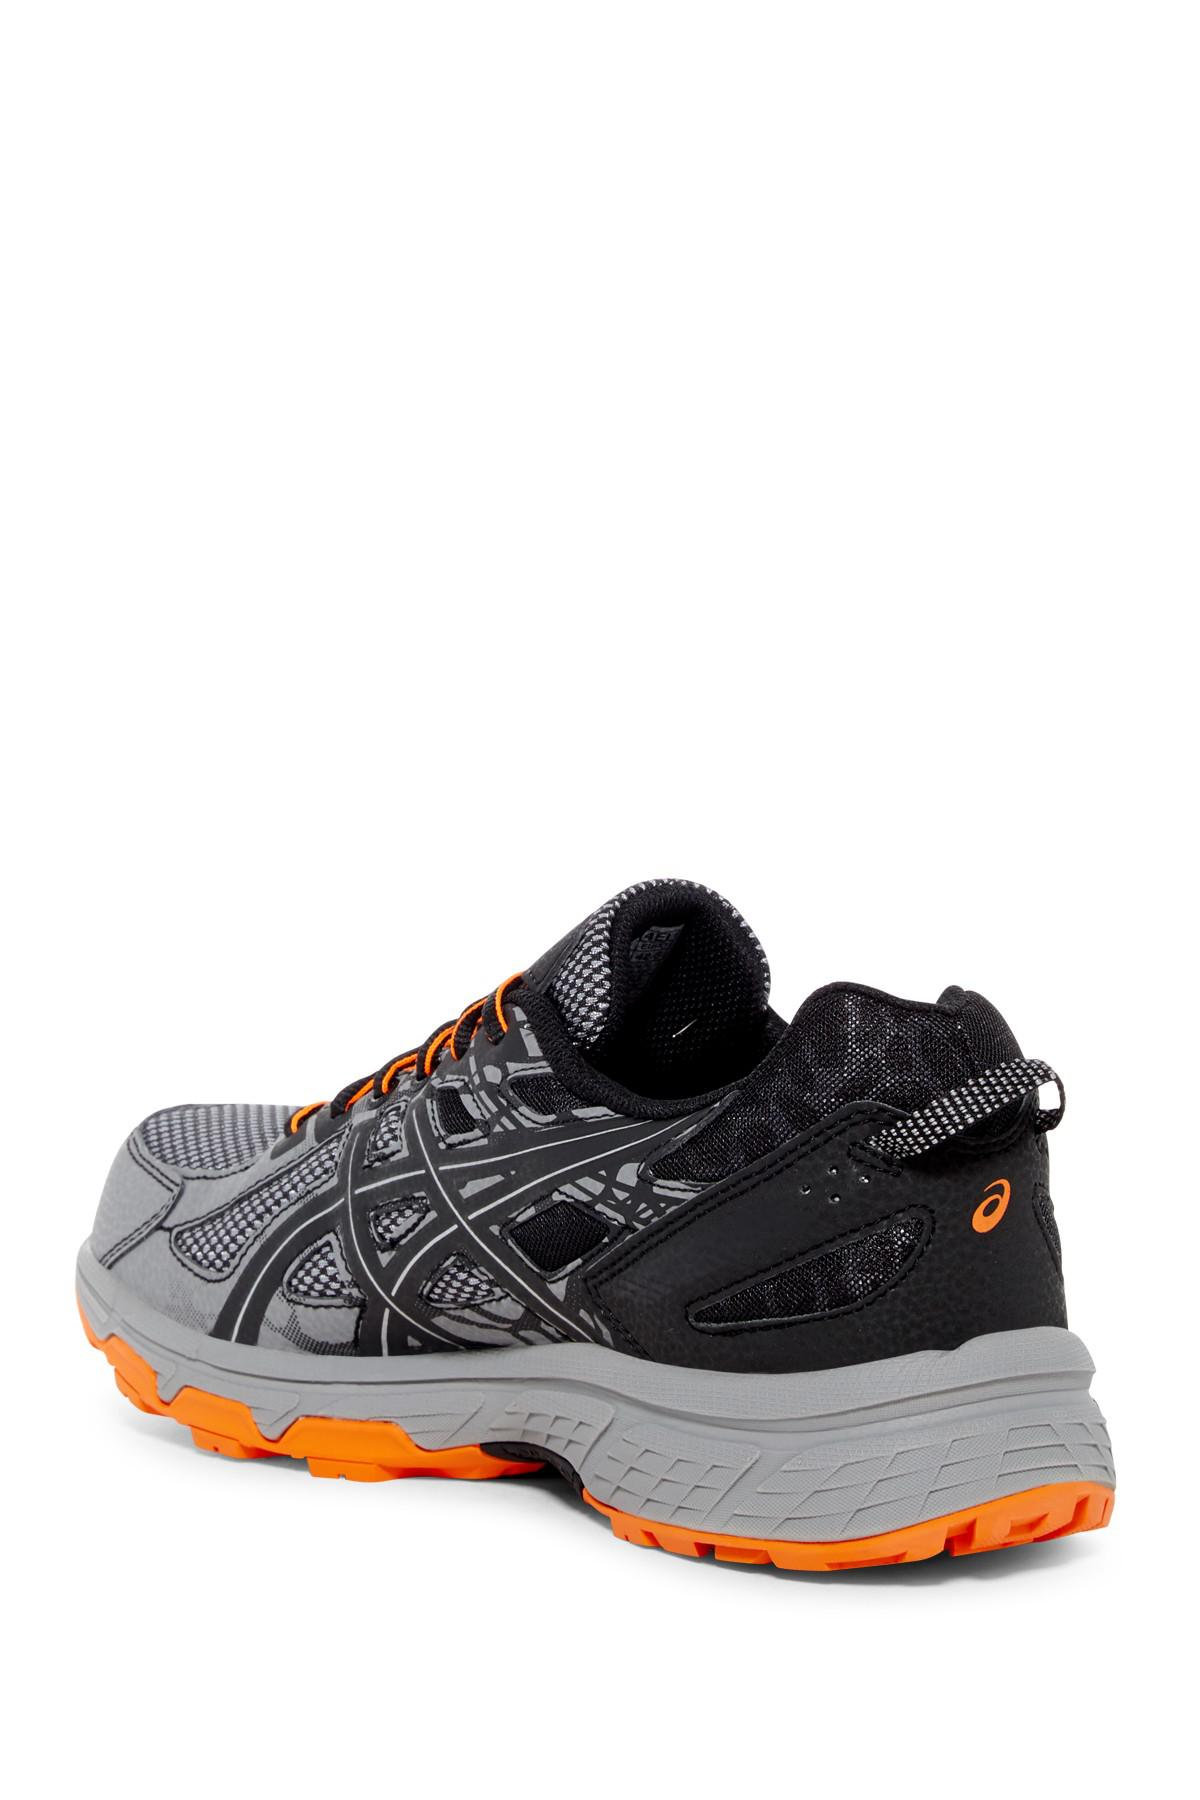 Lyst Gel Asics large Gel venture 6 Sneaker (4e) Largeur (4e) extra large pour homme 450a84f - beautylady.info